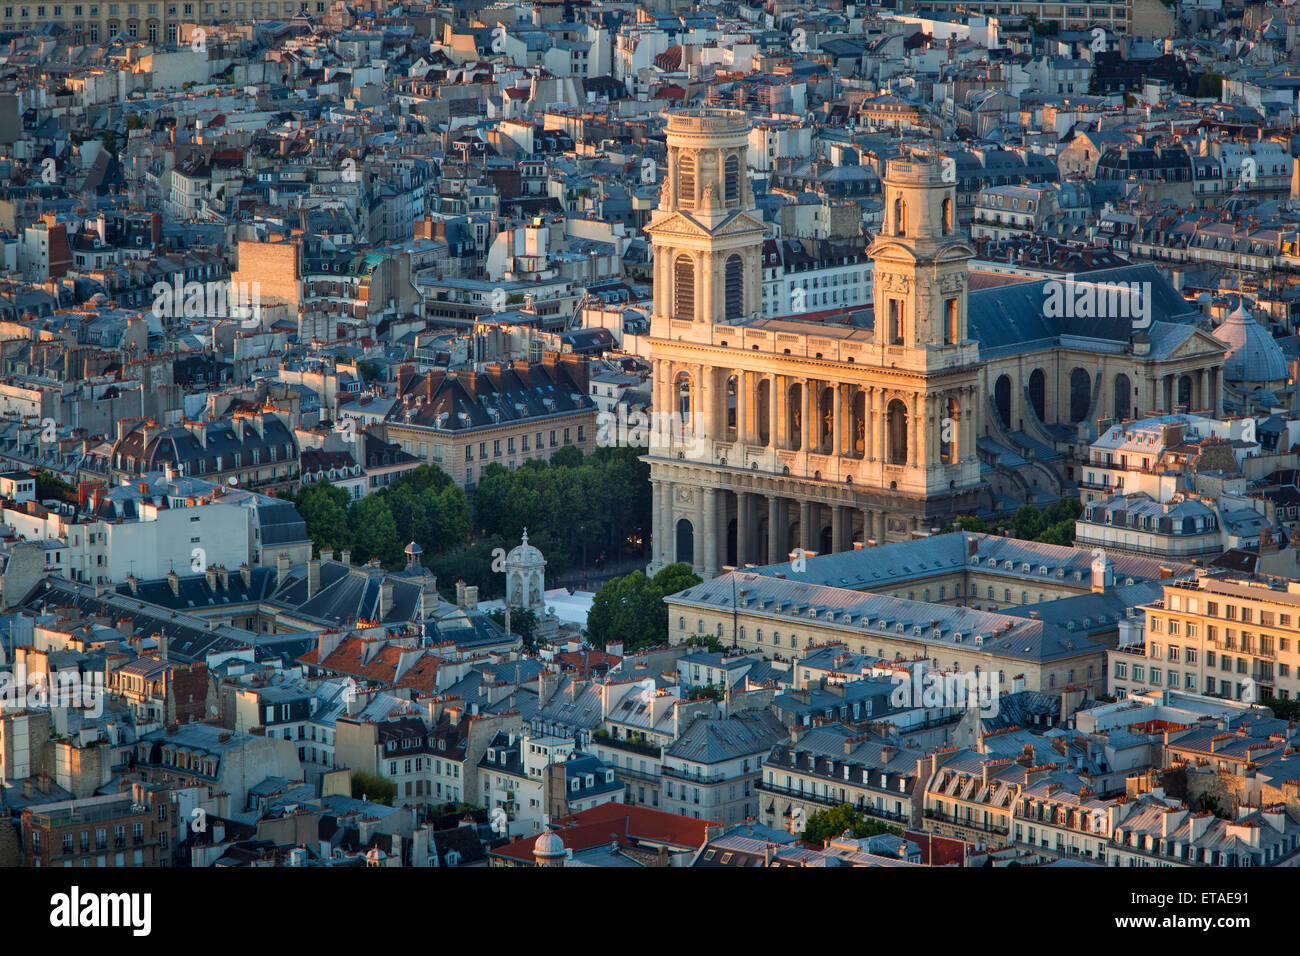 Overhead view of Eglise Saint Sulpice and the buildings of Paris, France Stock Photo